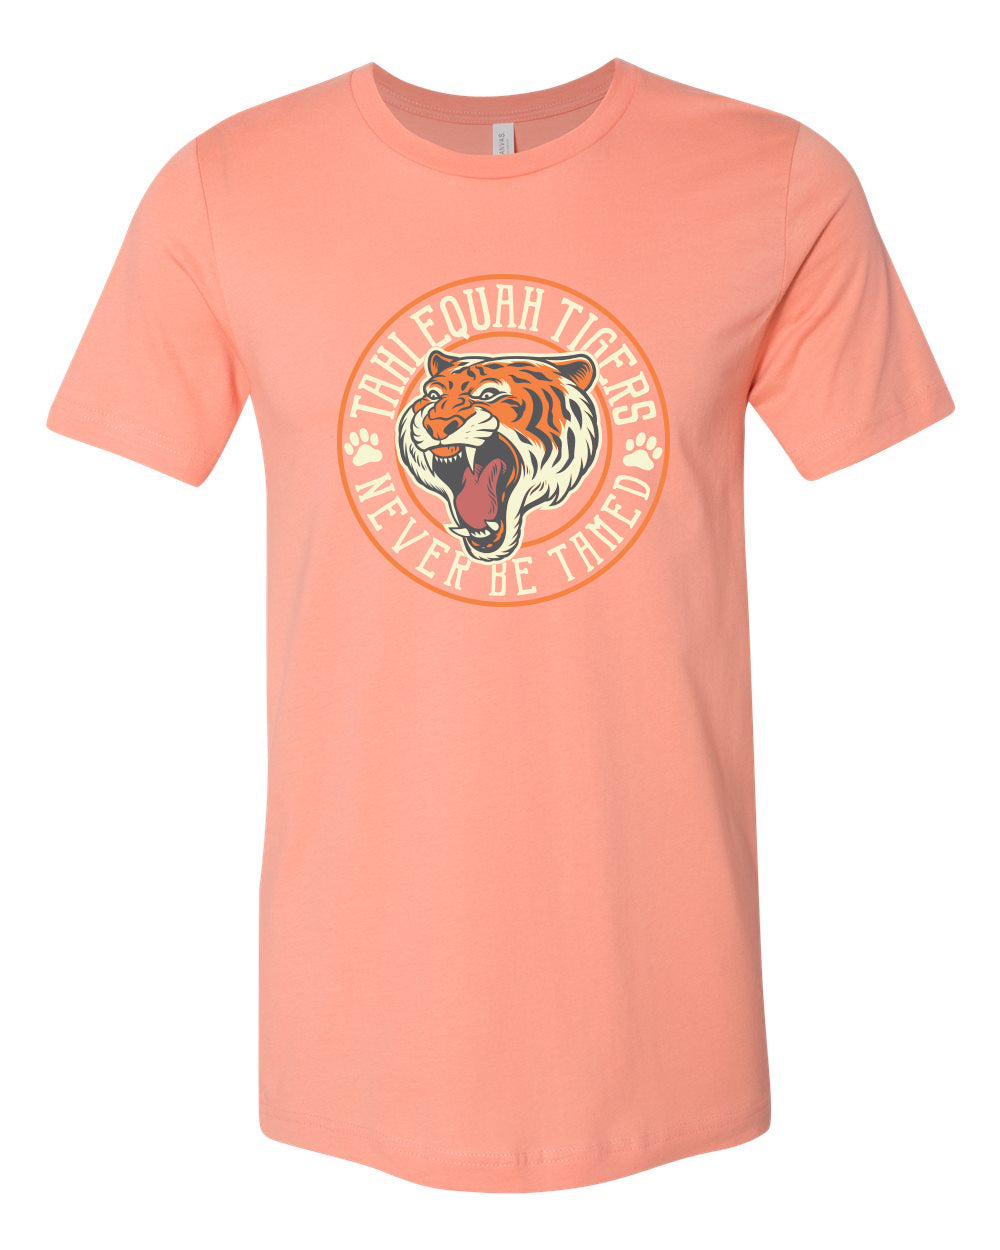 """NEVER BE TAMED"" TAHLEQUAH TIGER T-SHIRT"